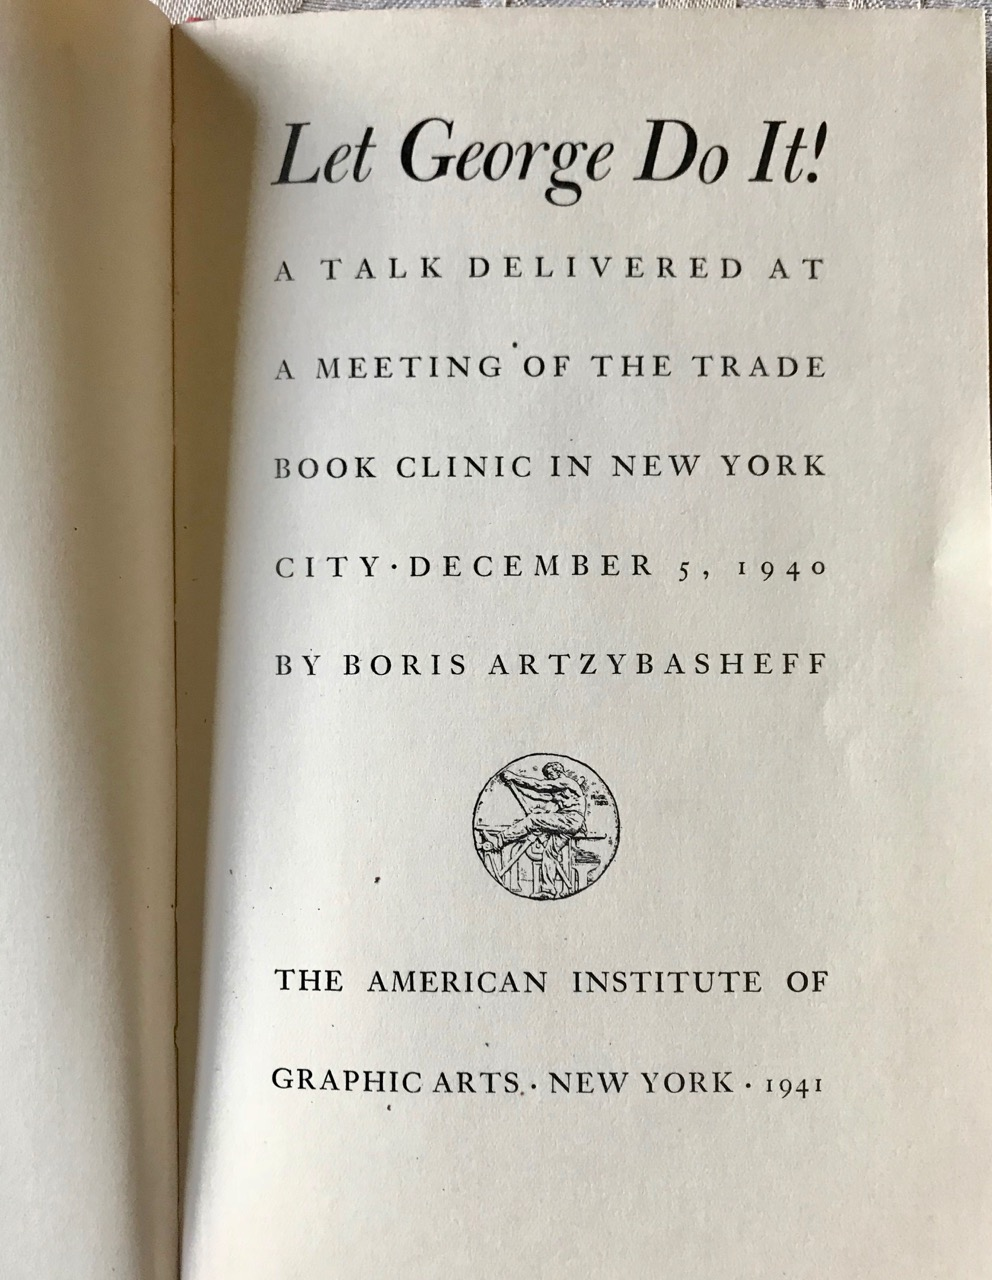 Image for Let George Do It! A Talk Delivered at t Meeting of the Trade Book Clinic in New York City December 5, 1940